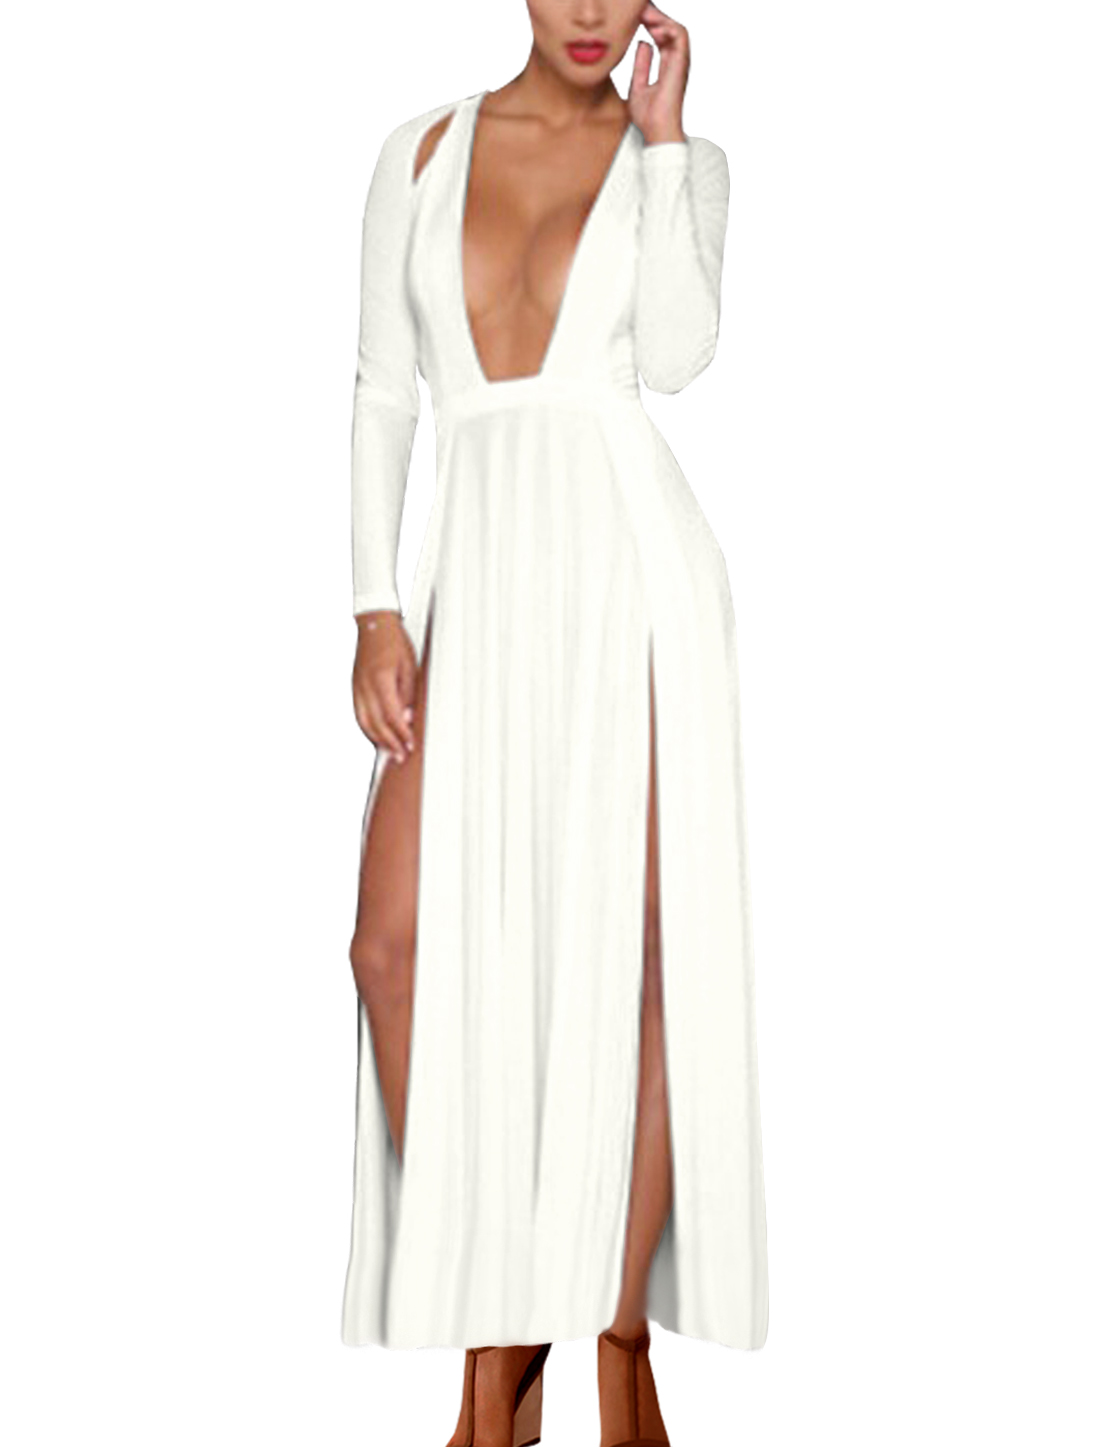 Women Plunging Neck Long Sleeve High Slits Maxi Dress White L